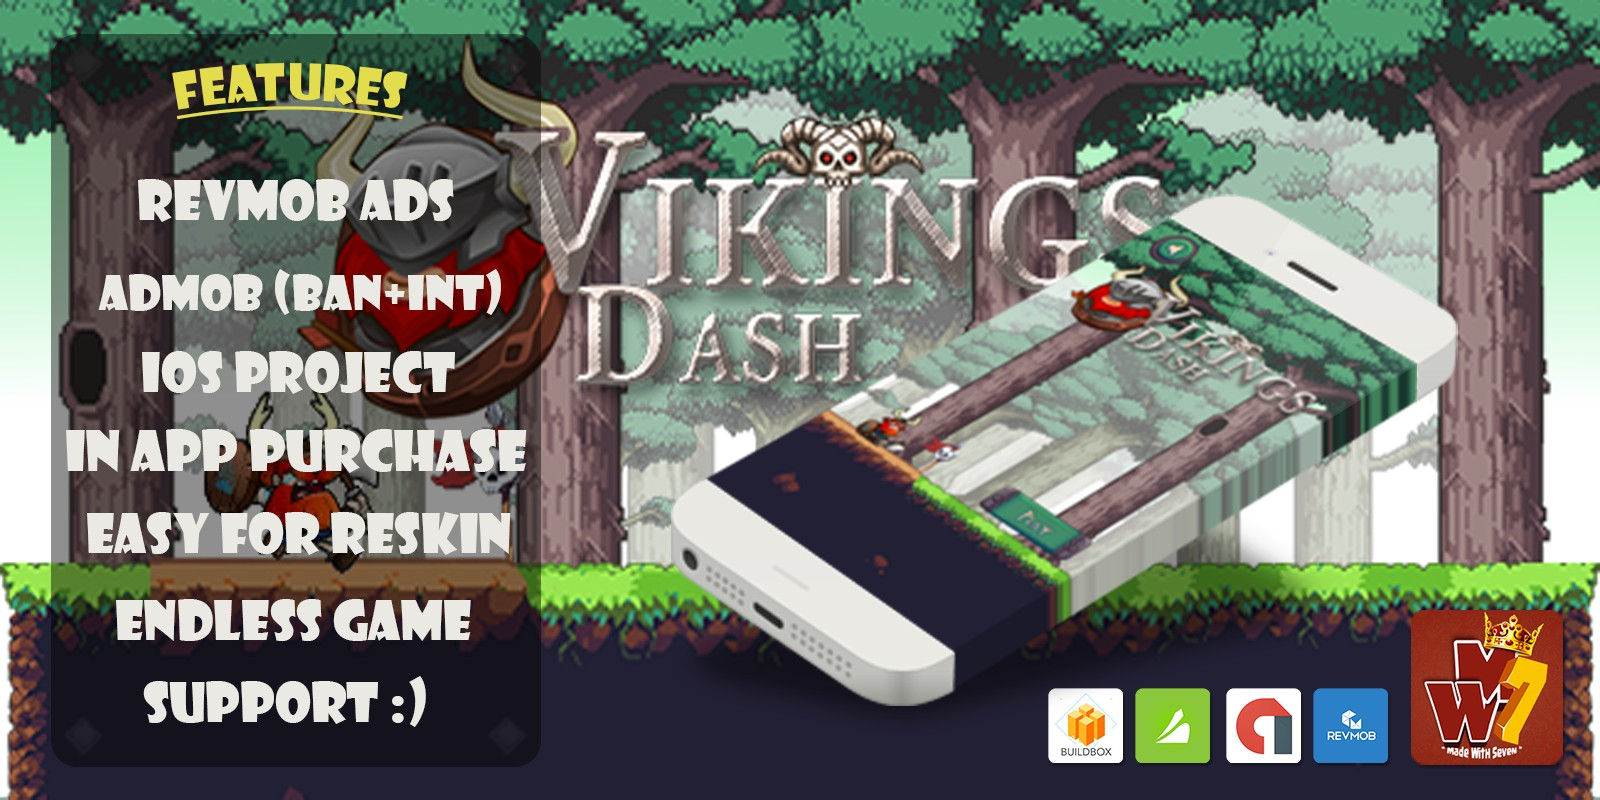 Viking Dash - iOS Xcode And Buildbox Project